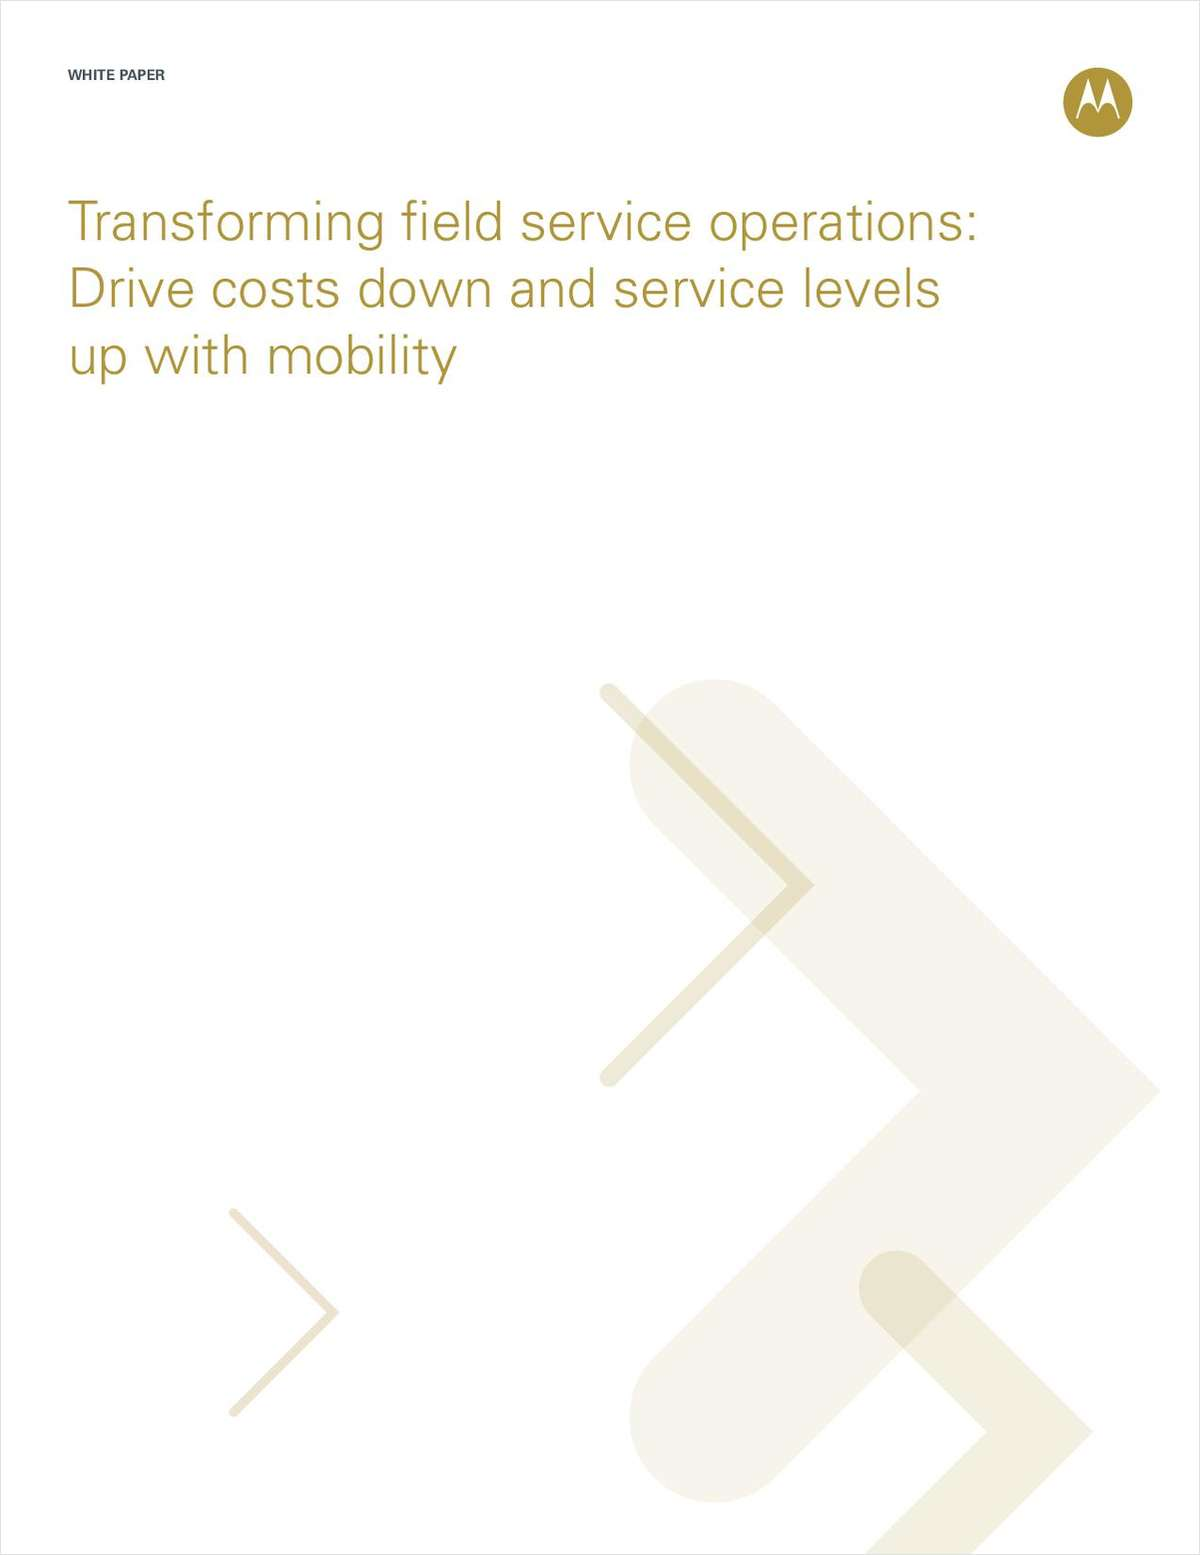 Transforming Field Service Operations with Mobility